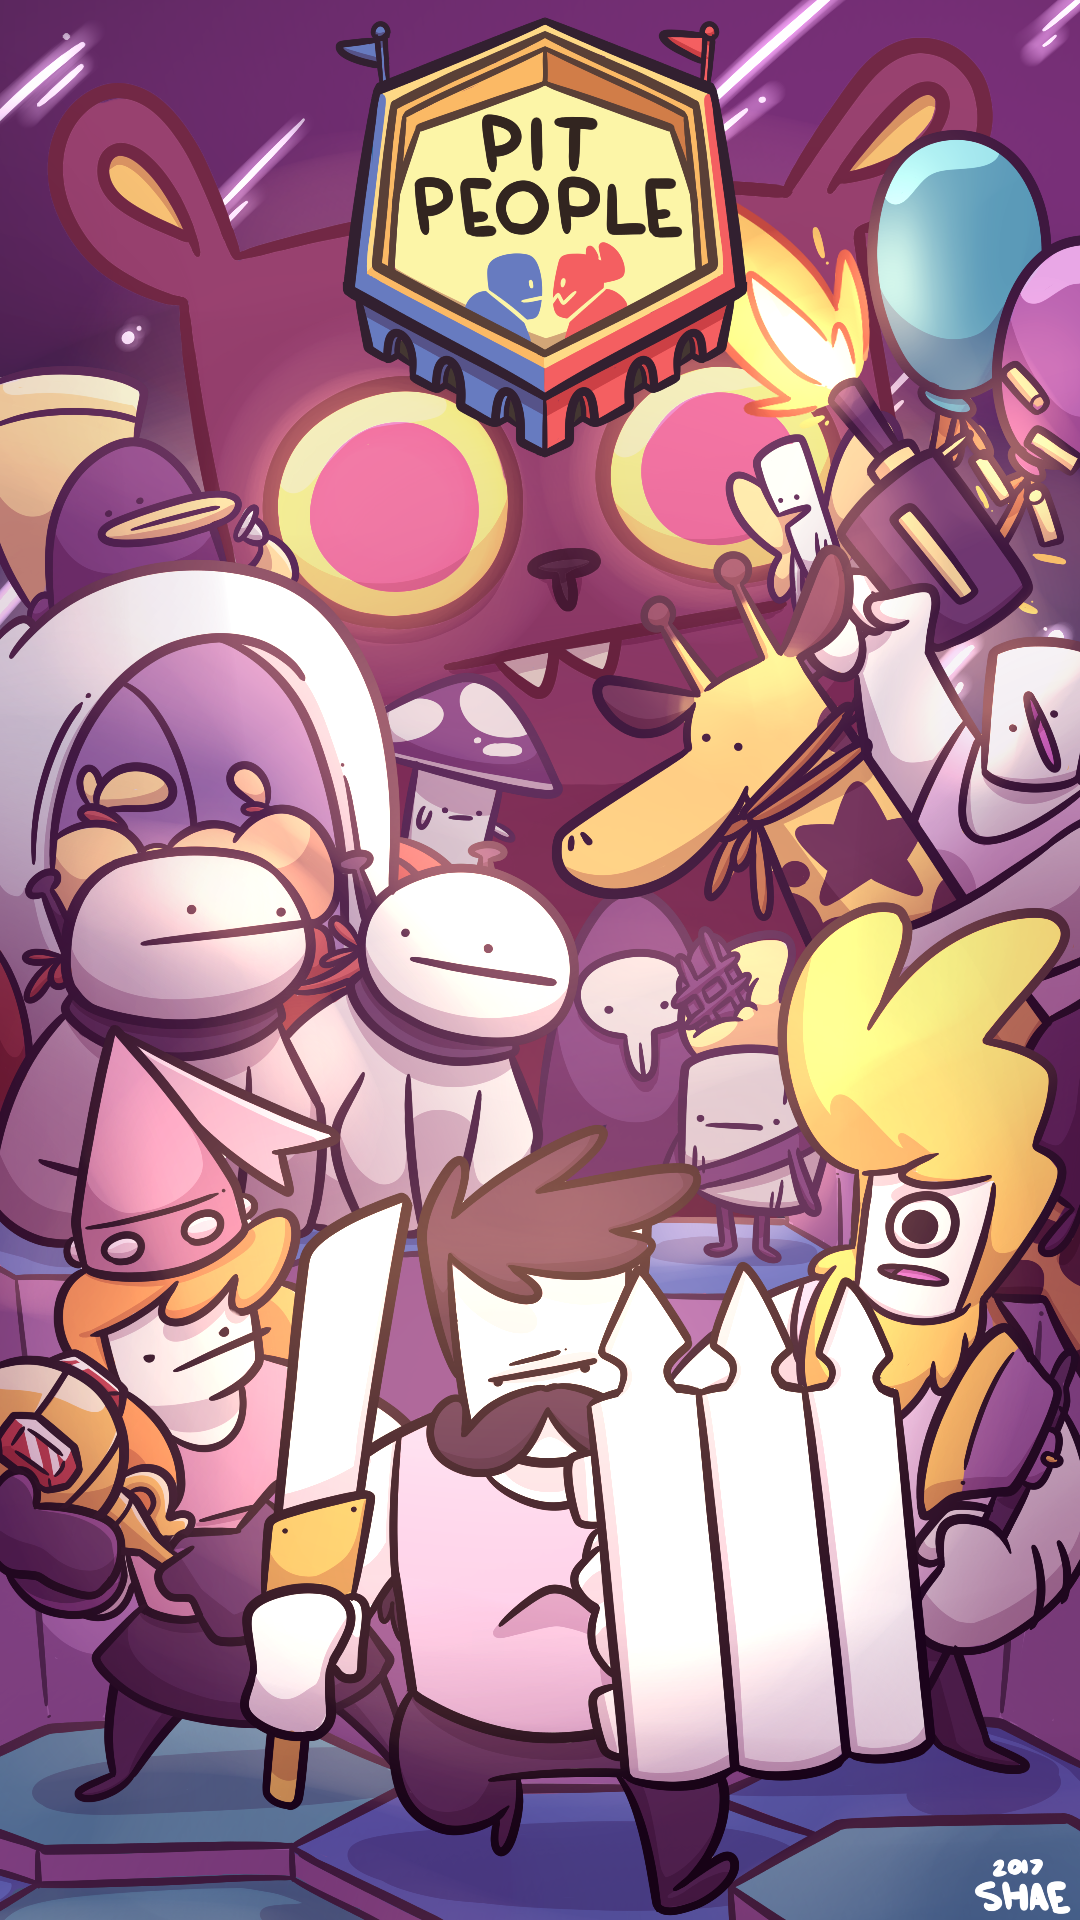 Pit People Art Contest Entry!